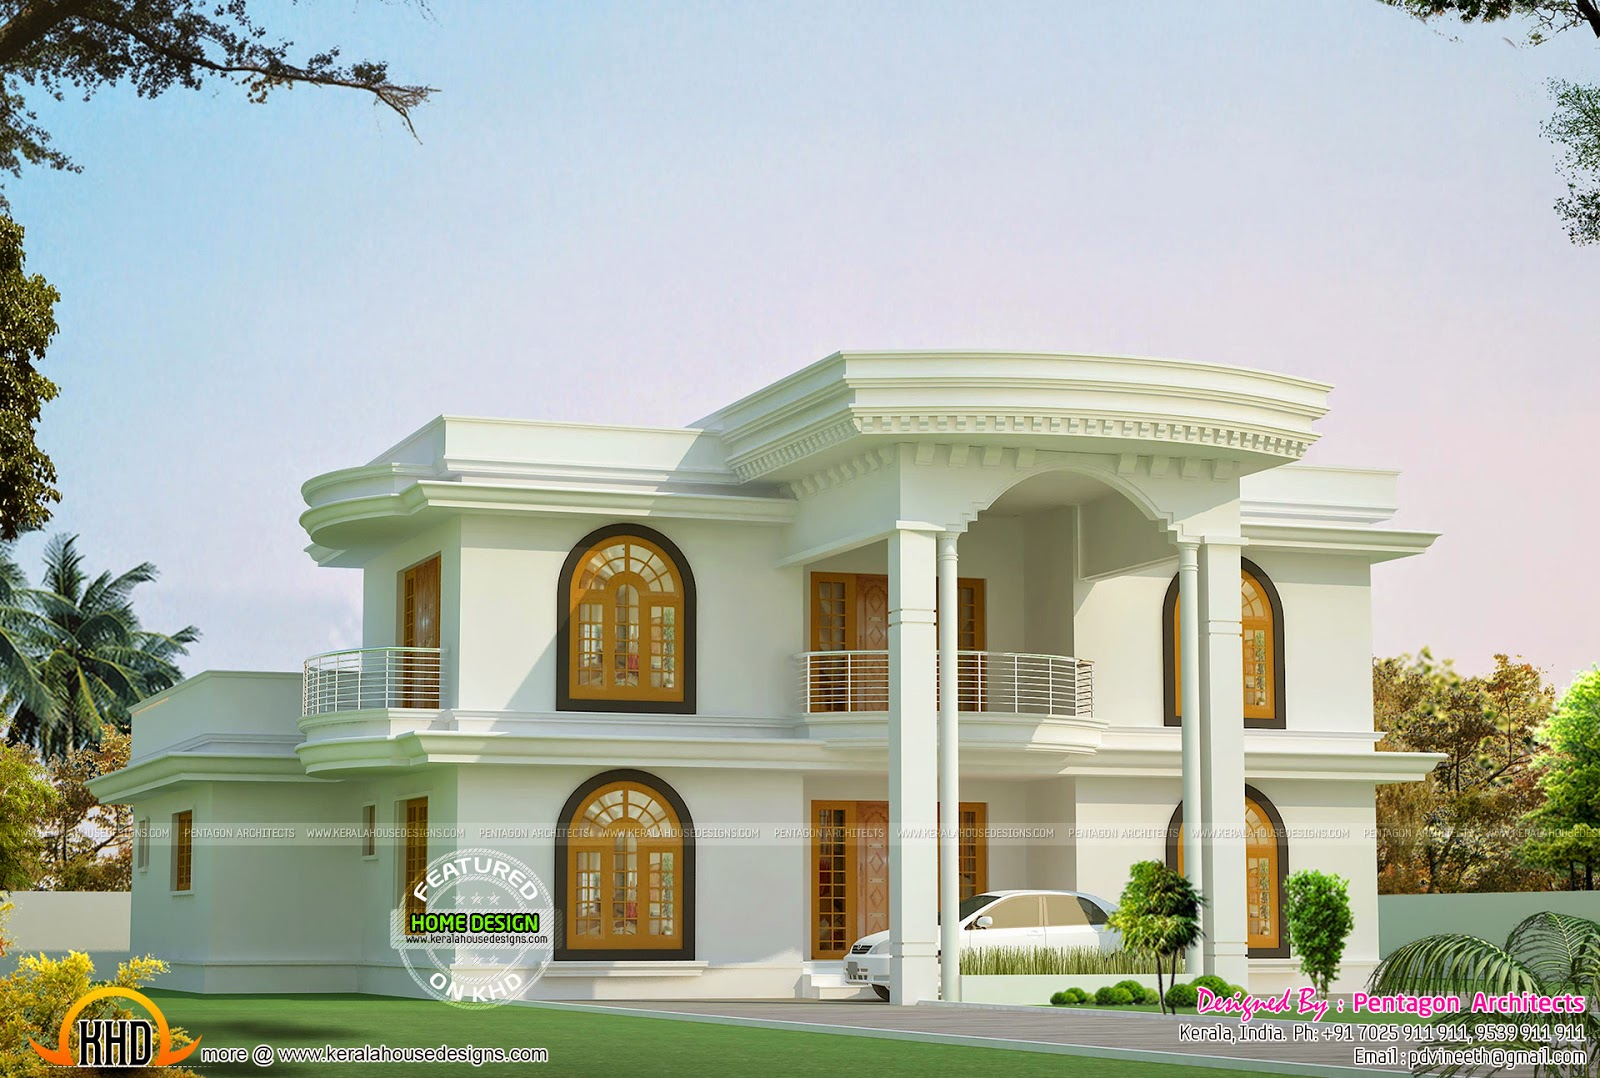 Kerala house plans set part 2 kerala home design and floor plans - Design house ...